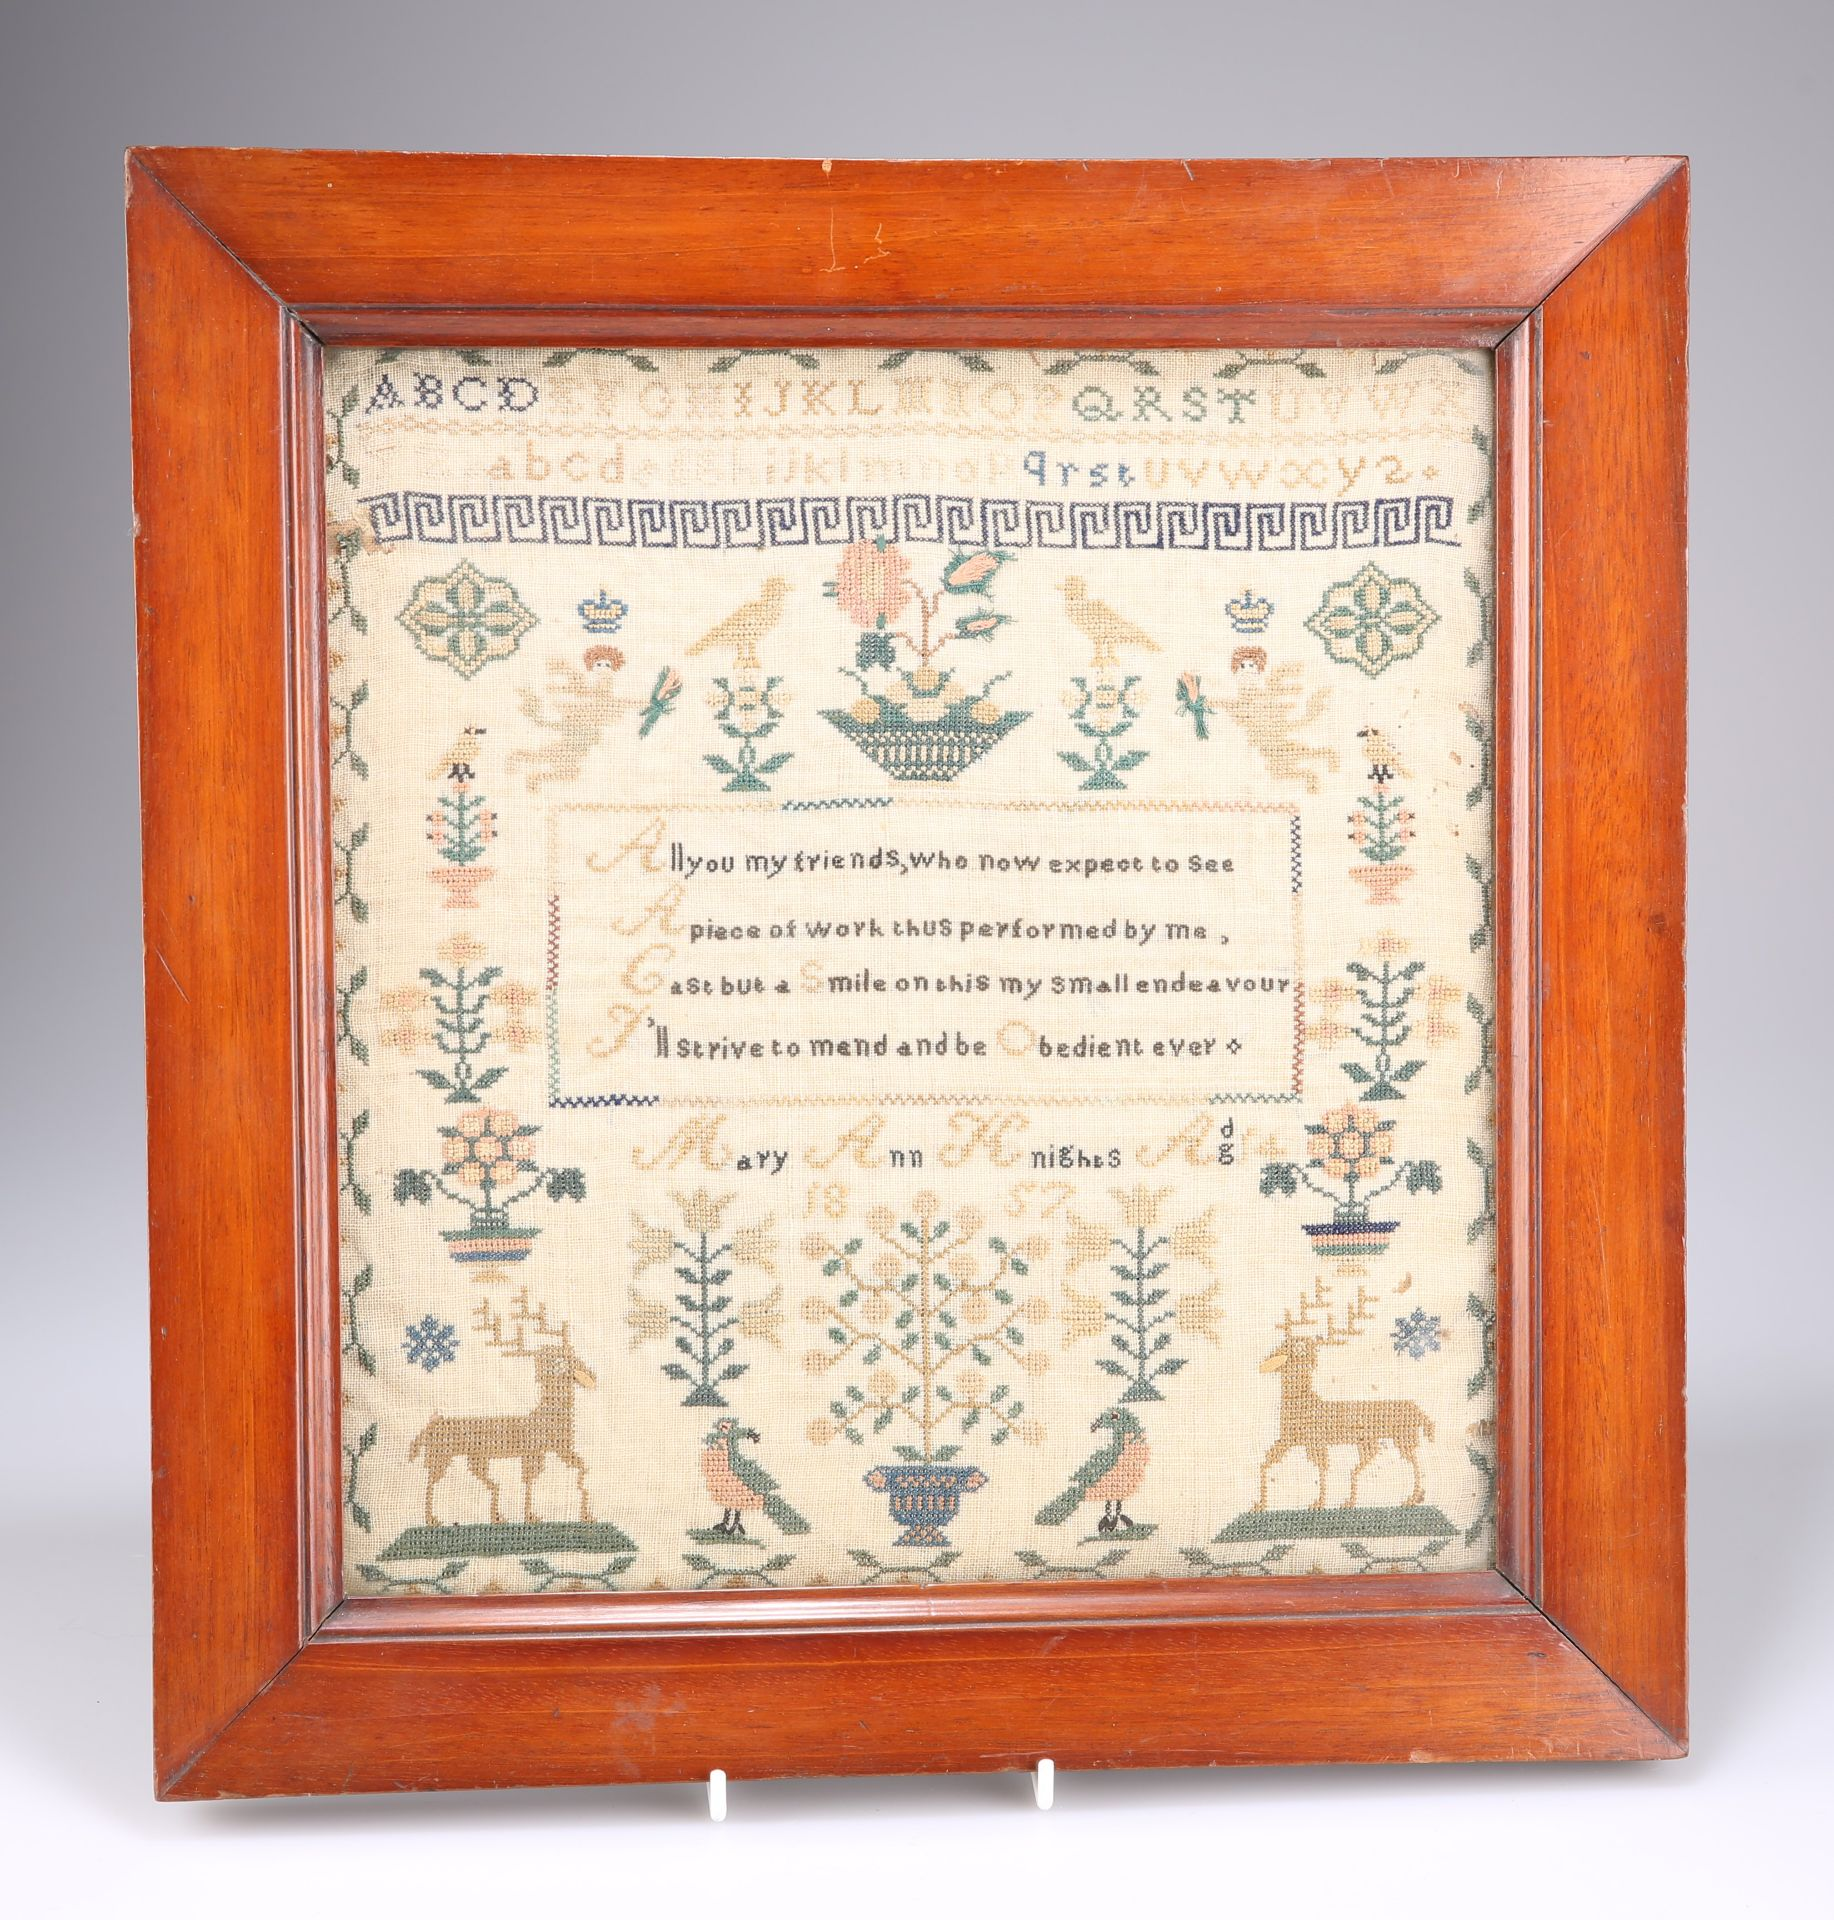 A 19TH CENTURY ALPHABET AND VERSE SAMPLER - Image 2 of 2